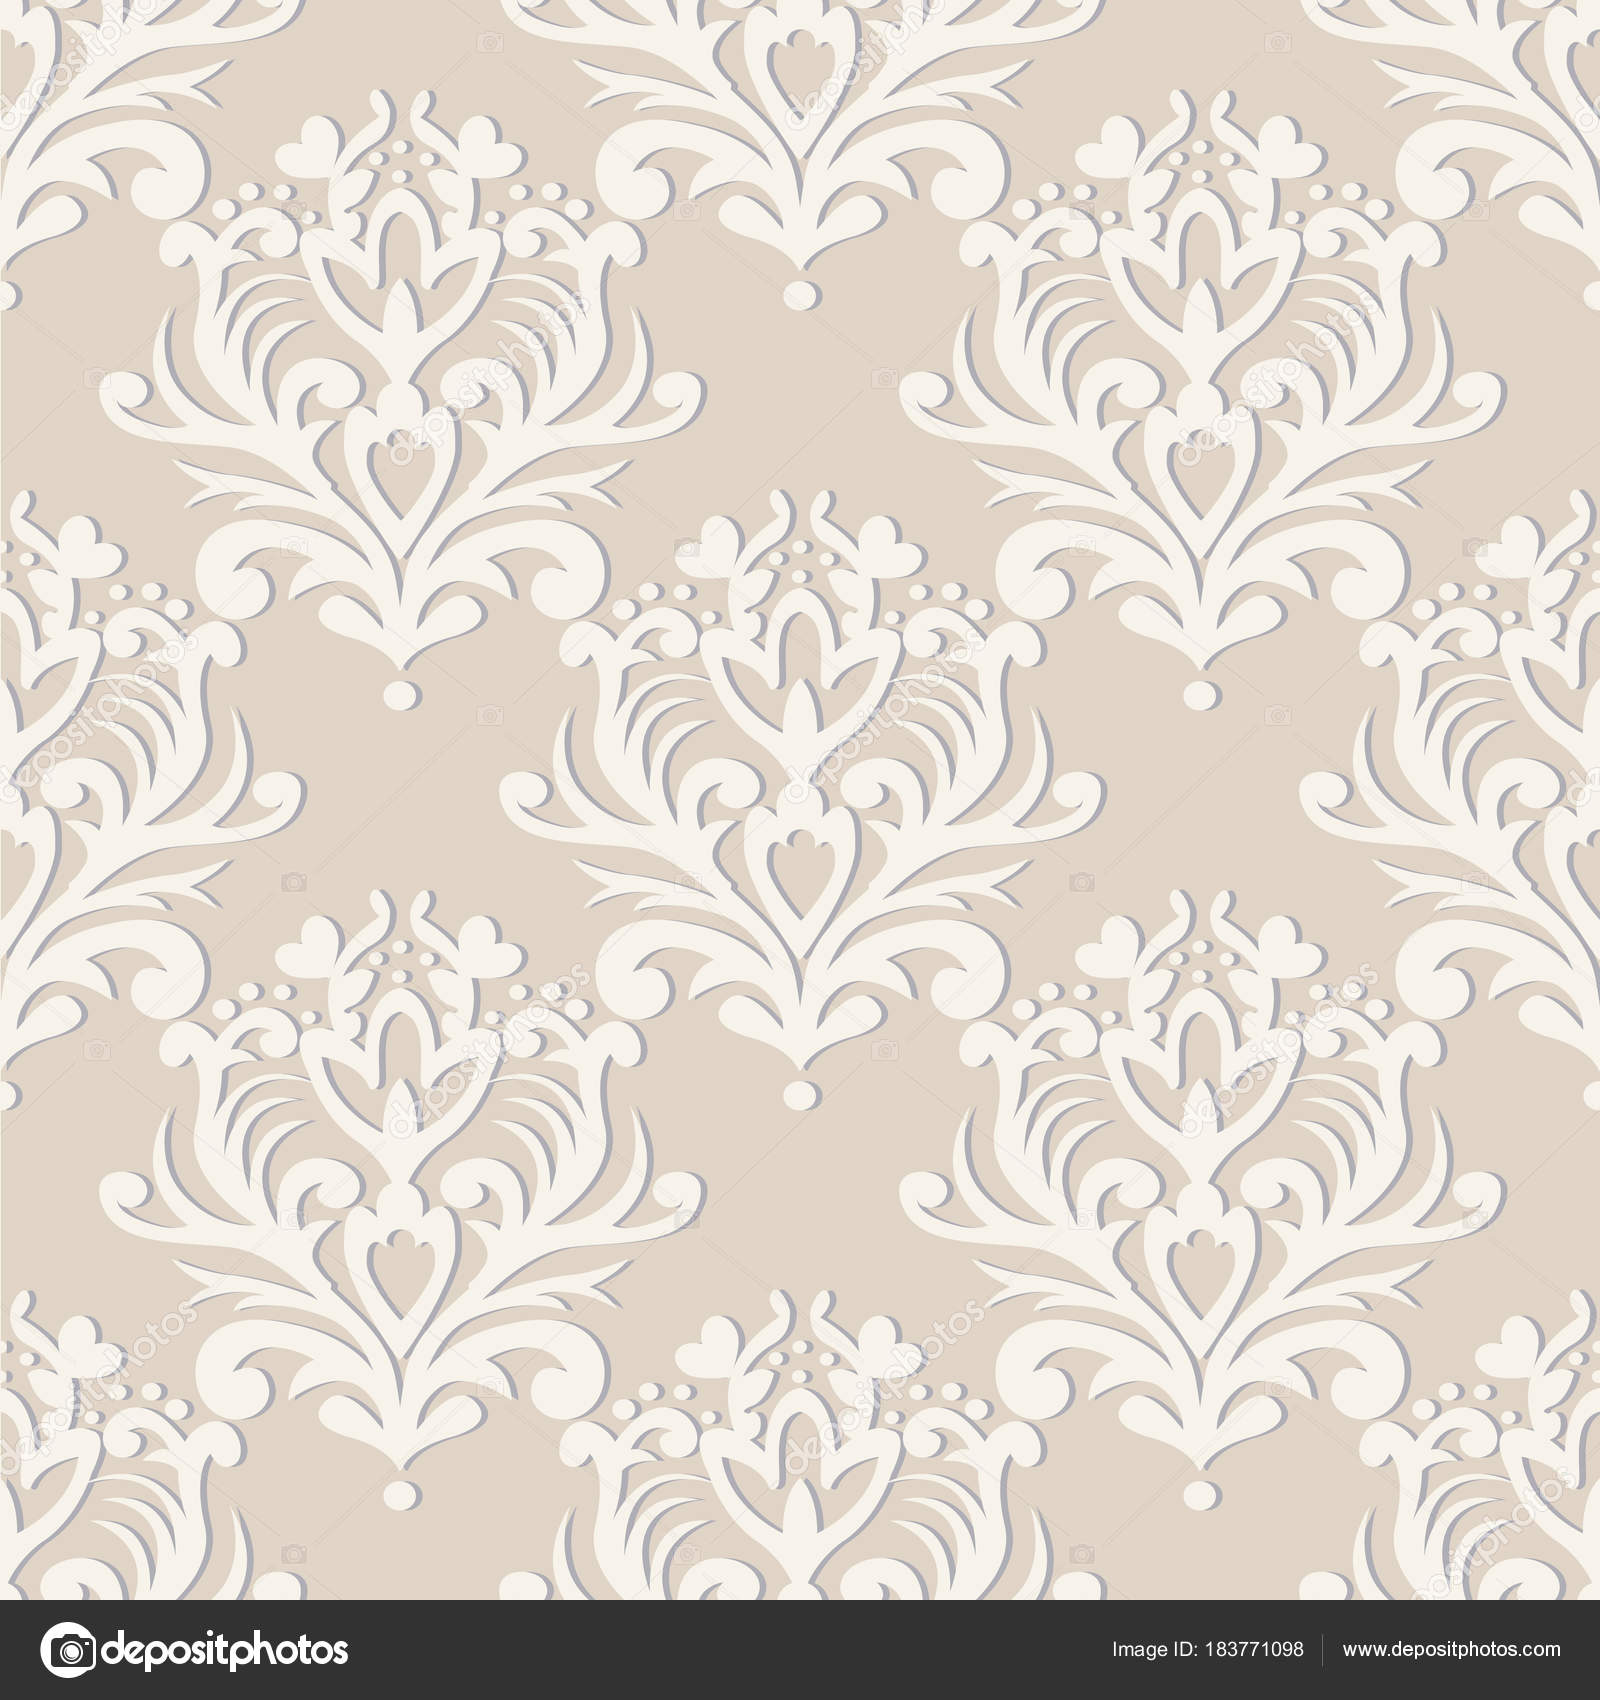 Vector seamless floral damask pattern rich ornament old damascus rich ornament old damascus style royal victorian seamless pattern for wallpapers textile wrapping wedding invitation vector by majick2mail stopboris Choice Image